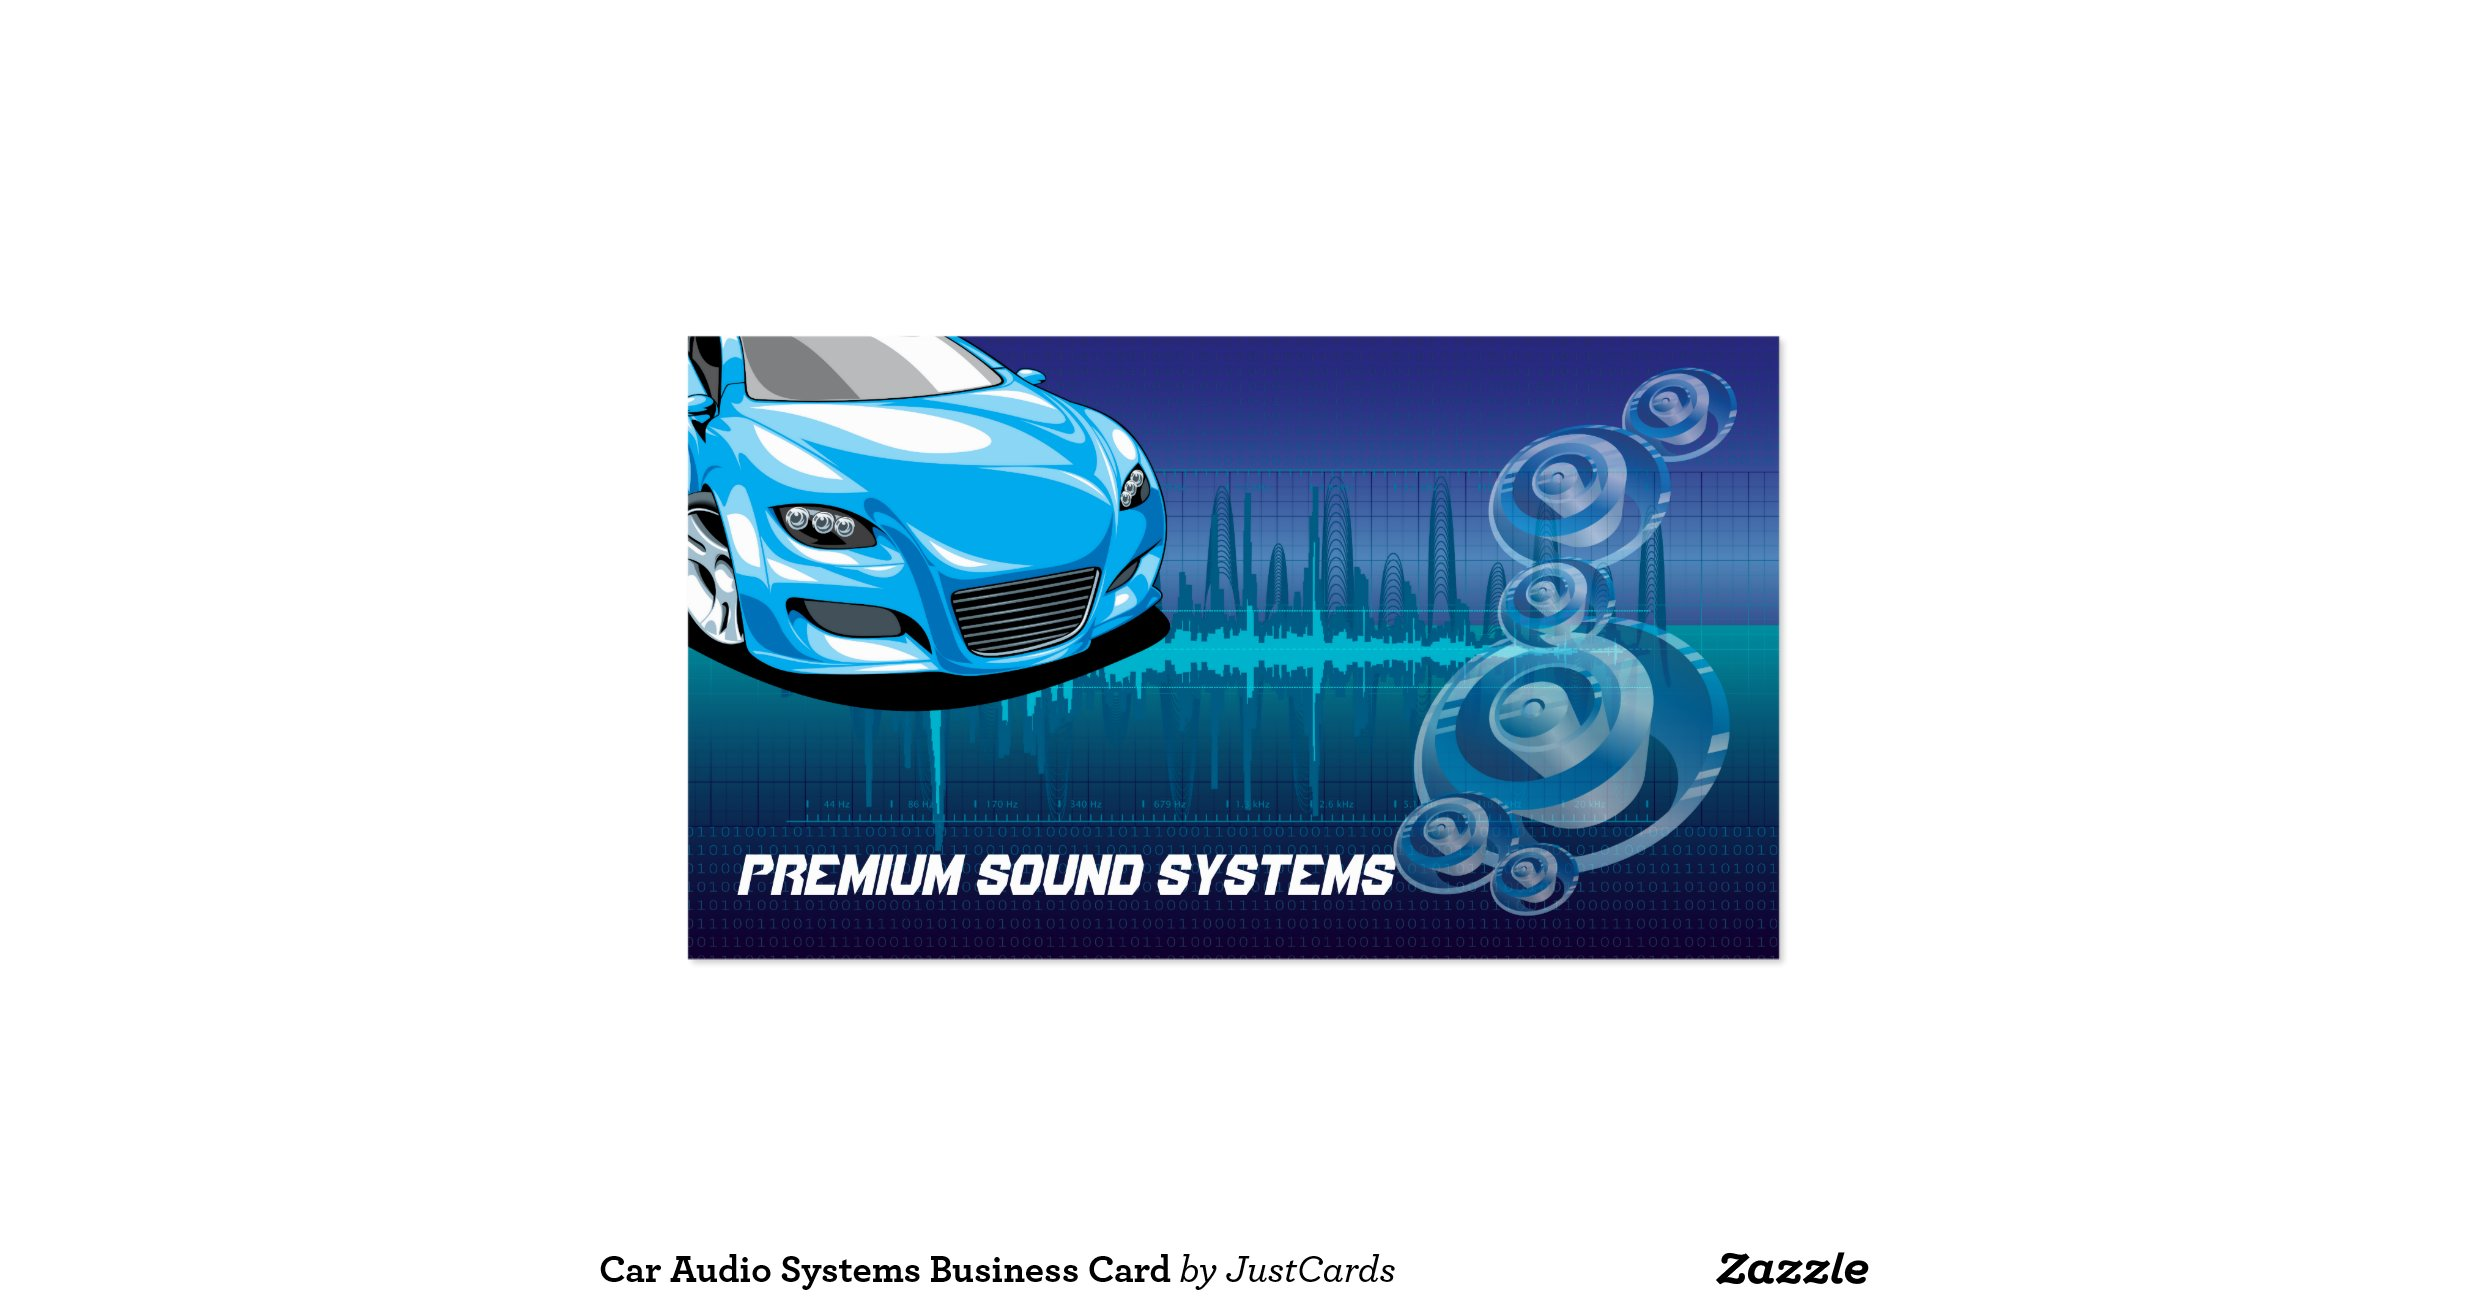 66498531971903607 furthermore 313703930269664653 in addition Car audio systems business card 240346280941165936 furthermore 297659856598109006 also Subwoofer Box Design. on on pinterest custom car audio systems and